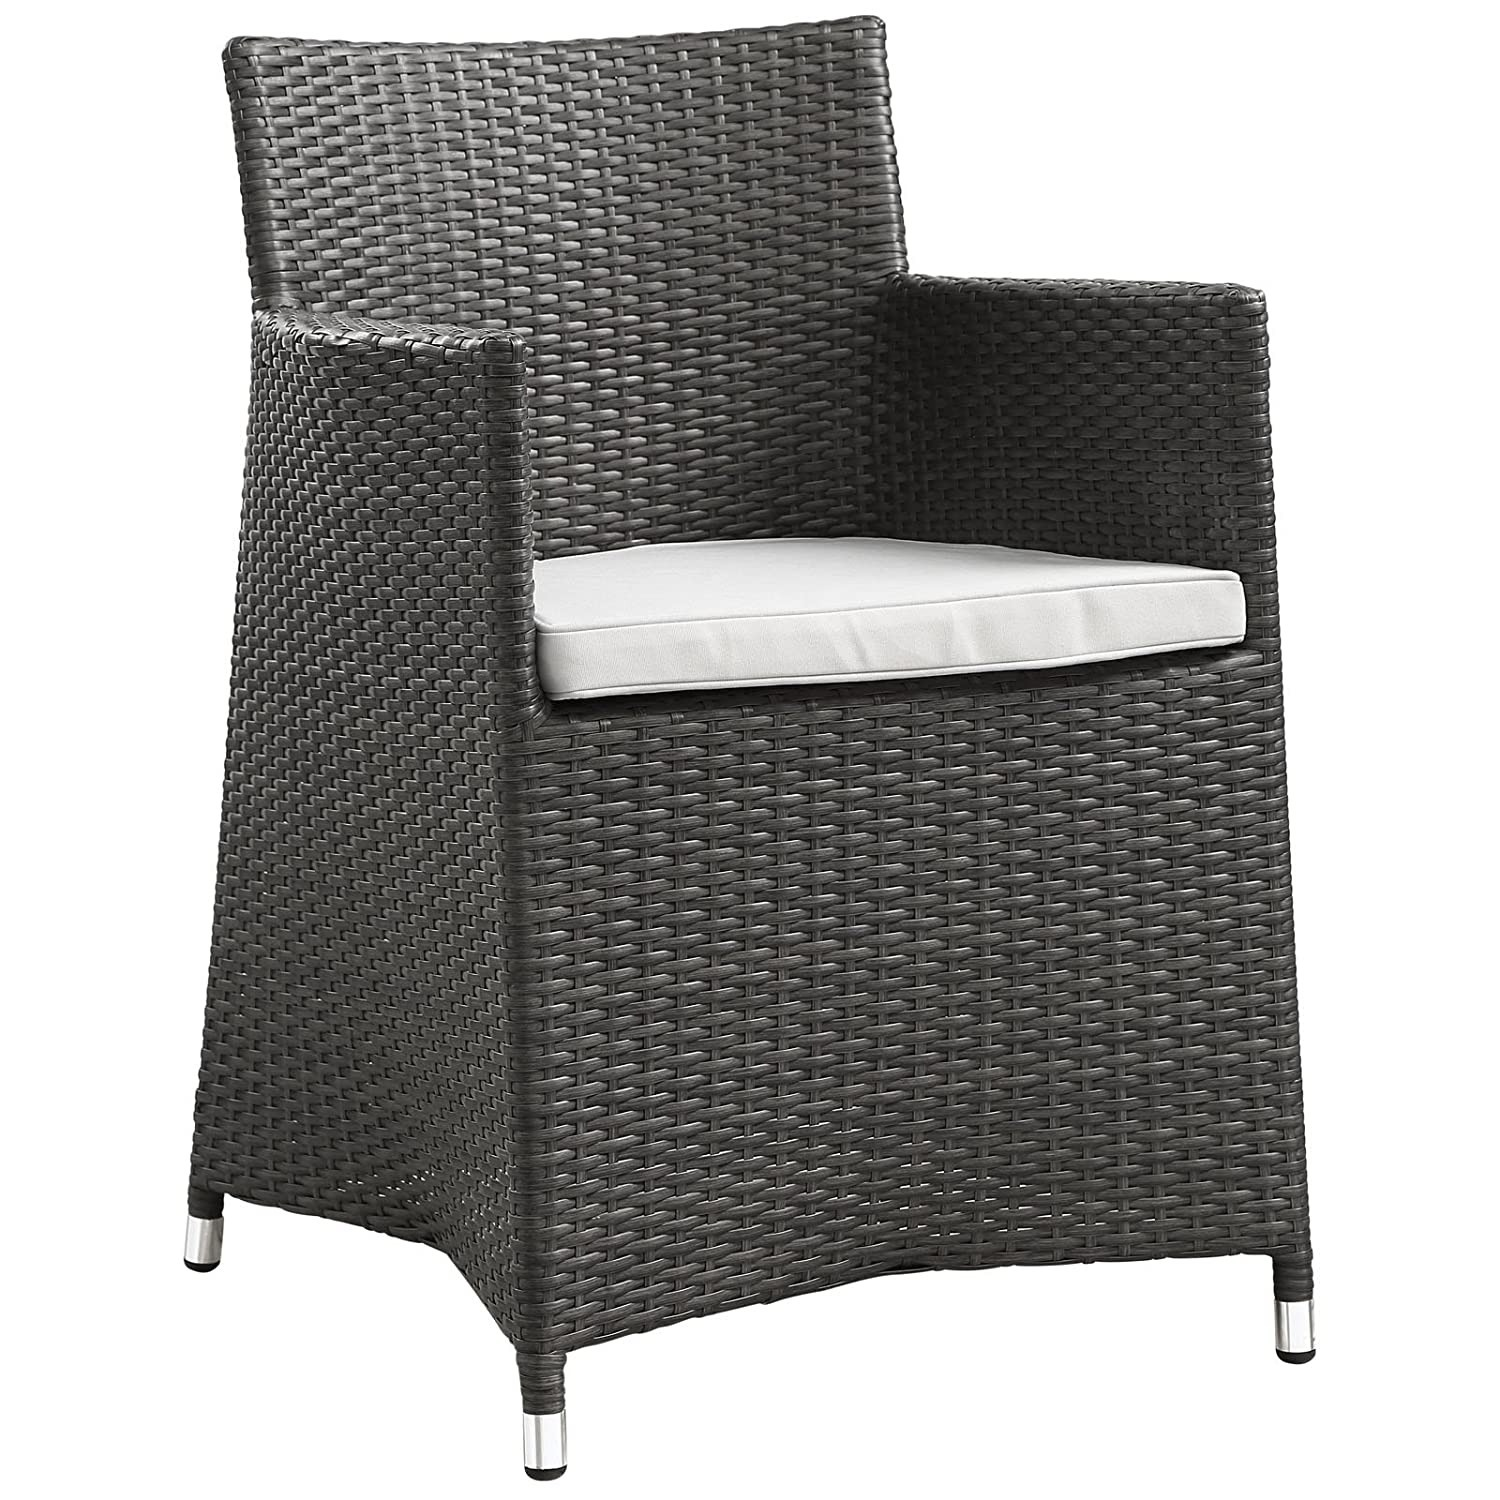 Modern 3-Piece Dining Set In Brown Rattan Weave - image-1